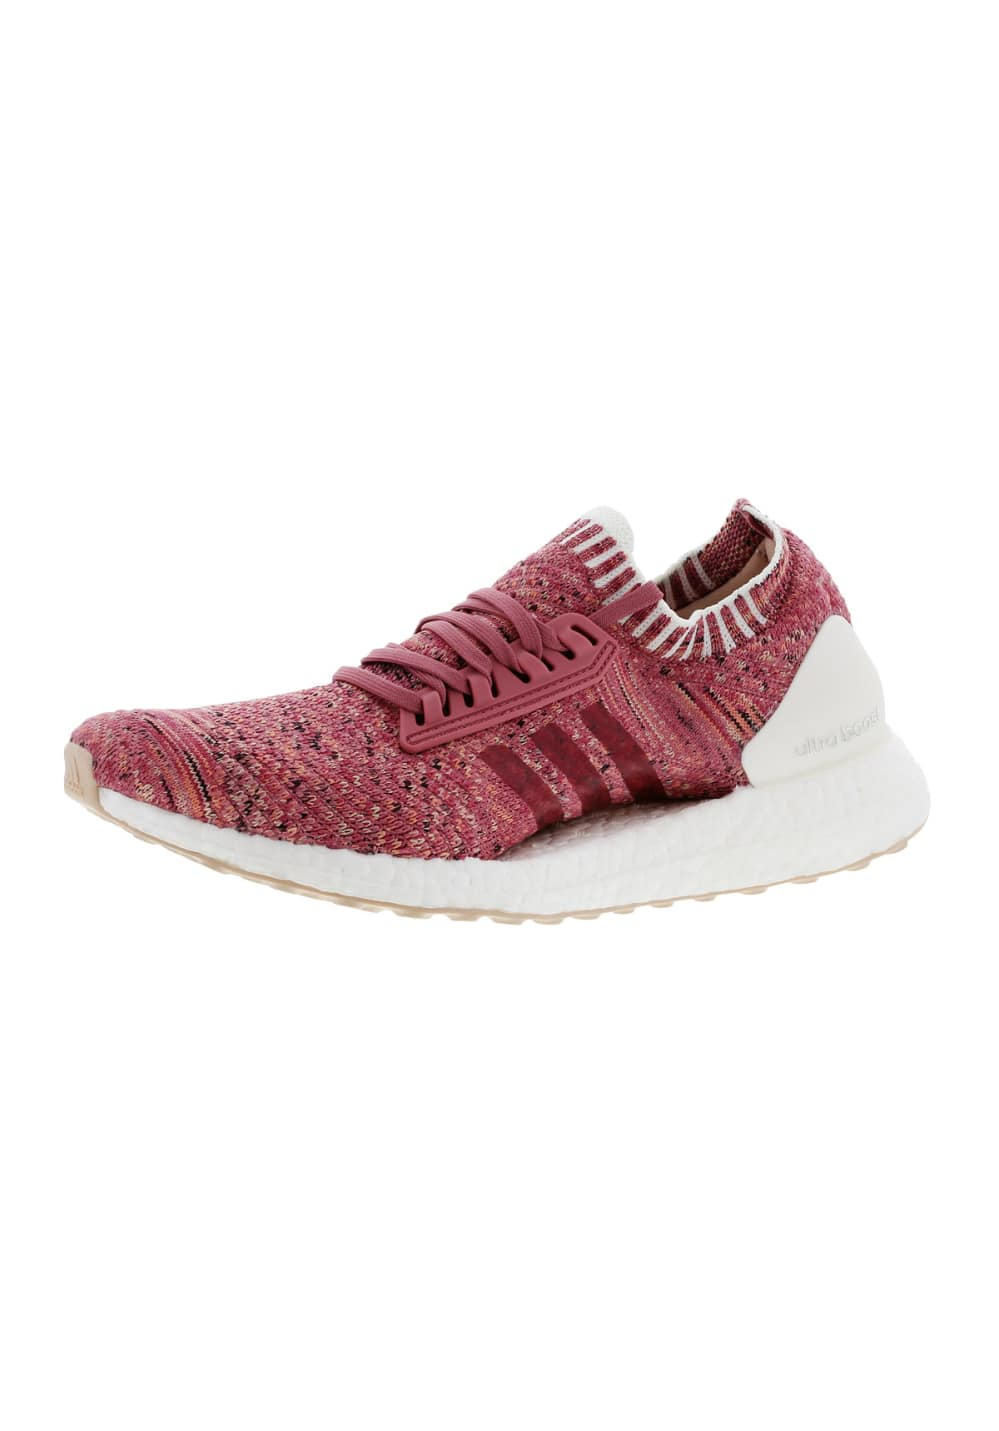 Adidas Chaussures Boost Femme Pour Rose Running Ultra X yn8POvm0wN